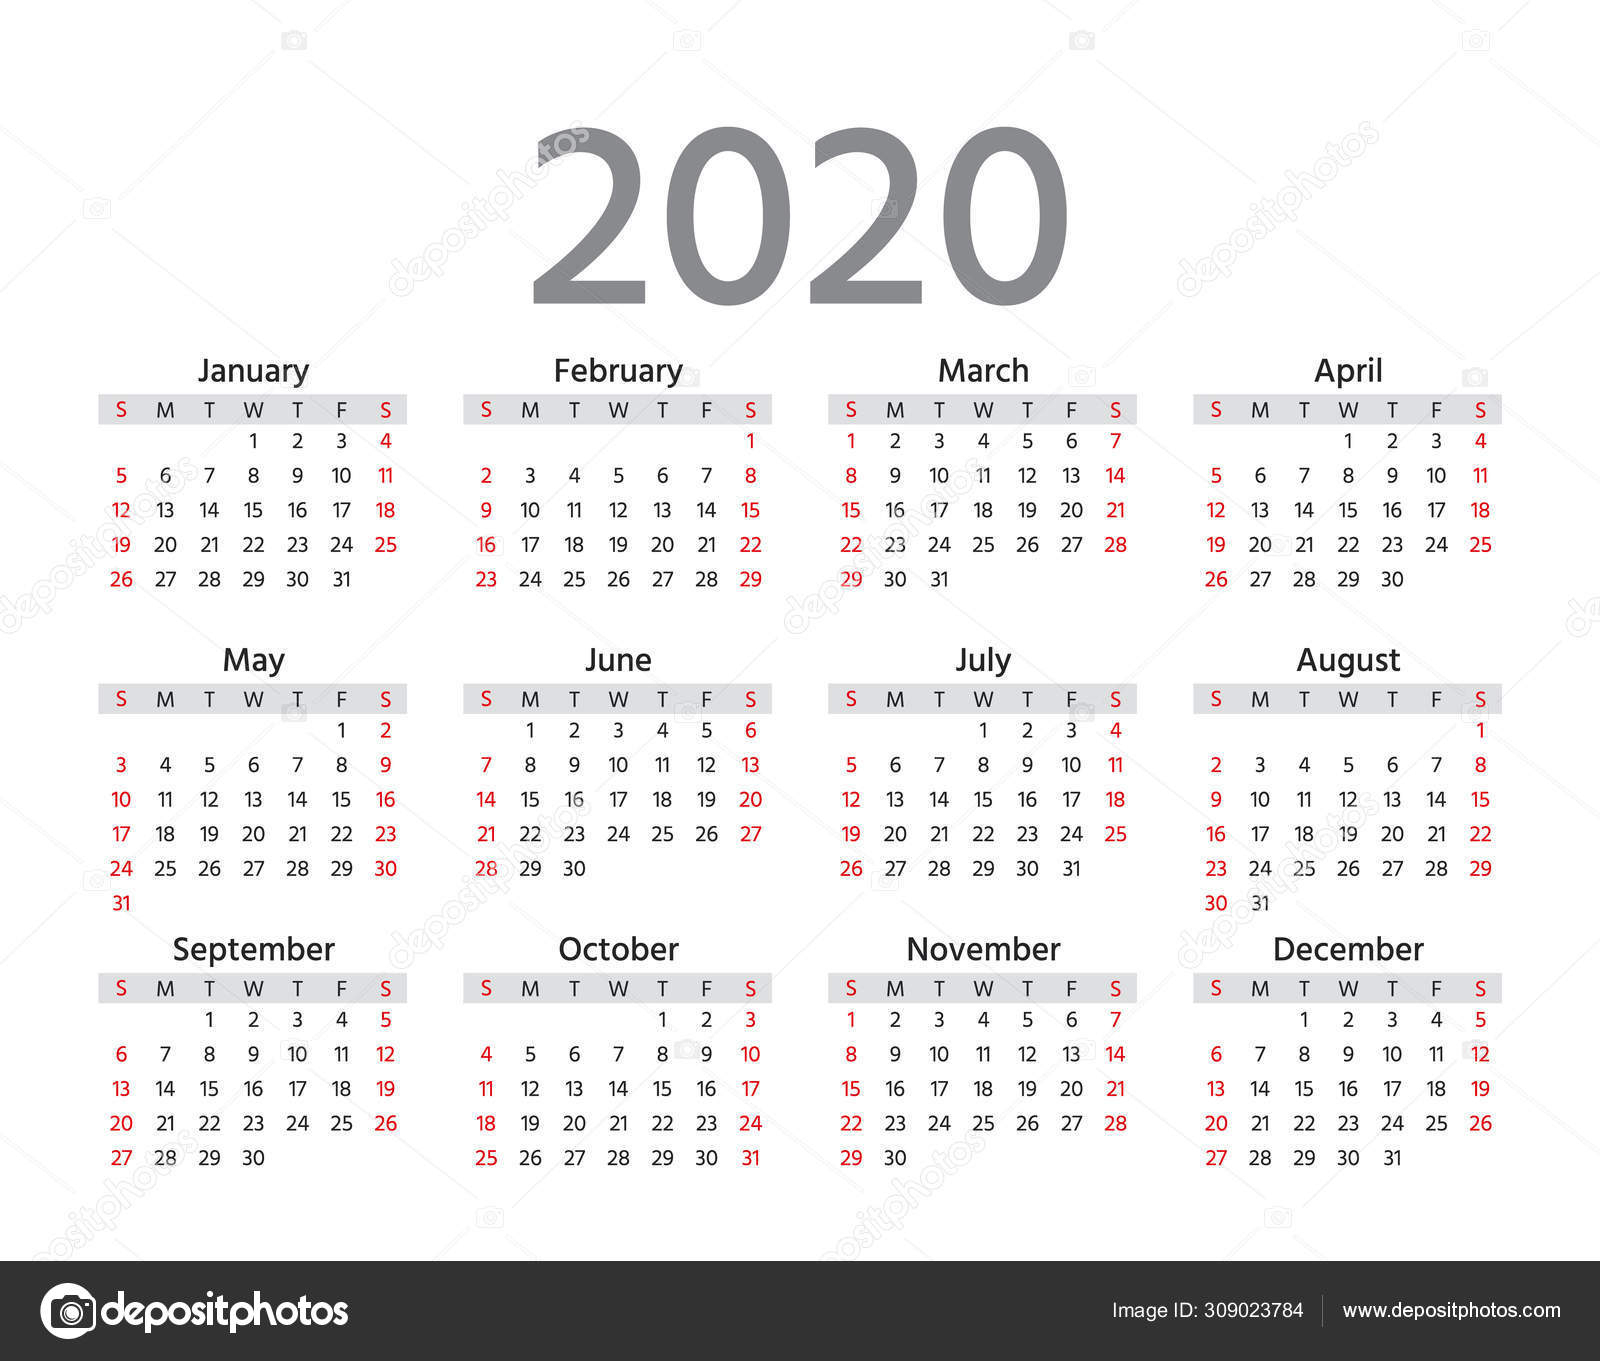 2020 Calendar. Vector Illustration. Template Year Planner regarding 2020 Calendars To Print Without Downloading